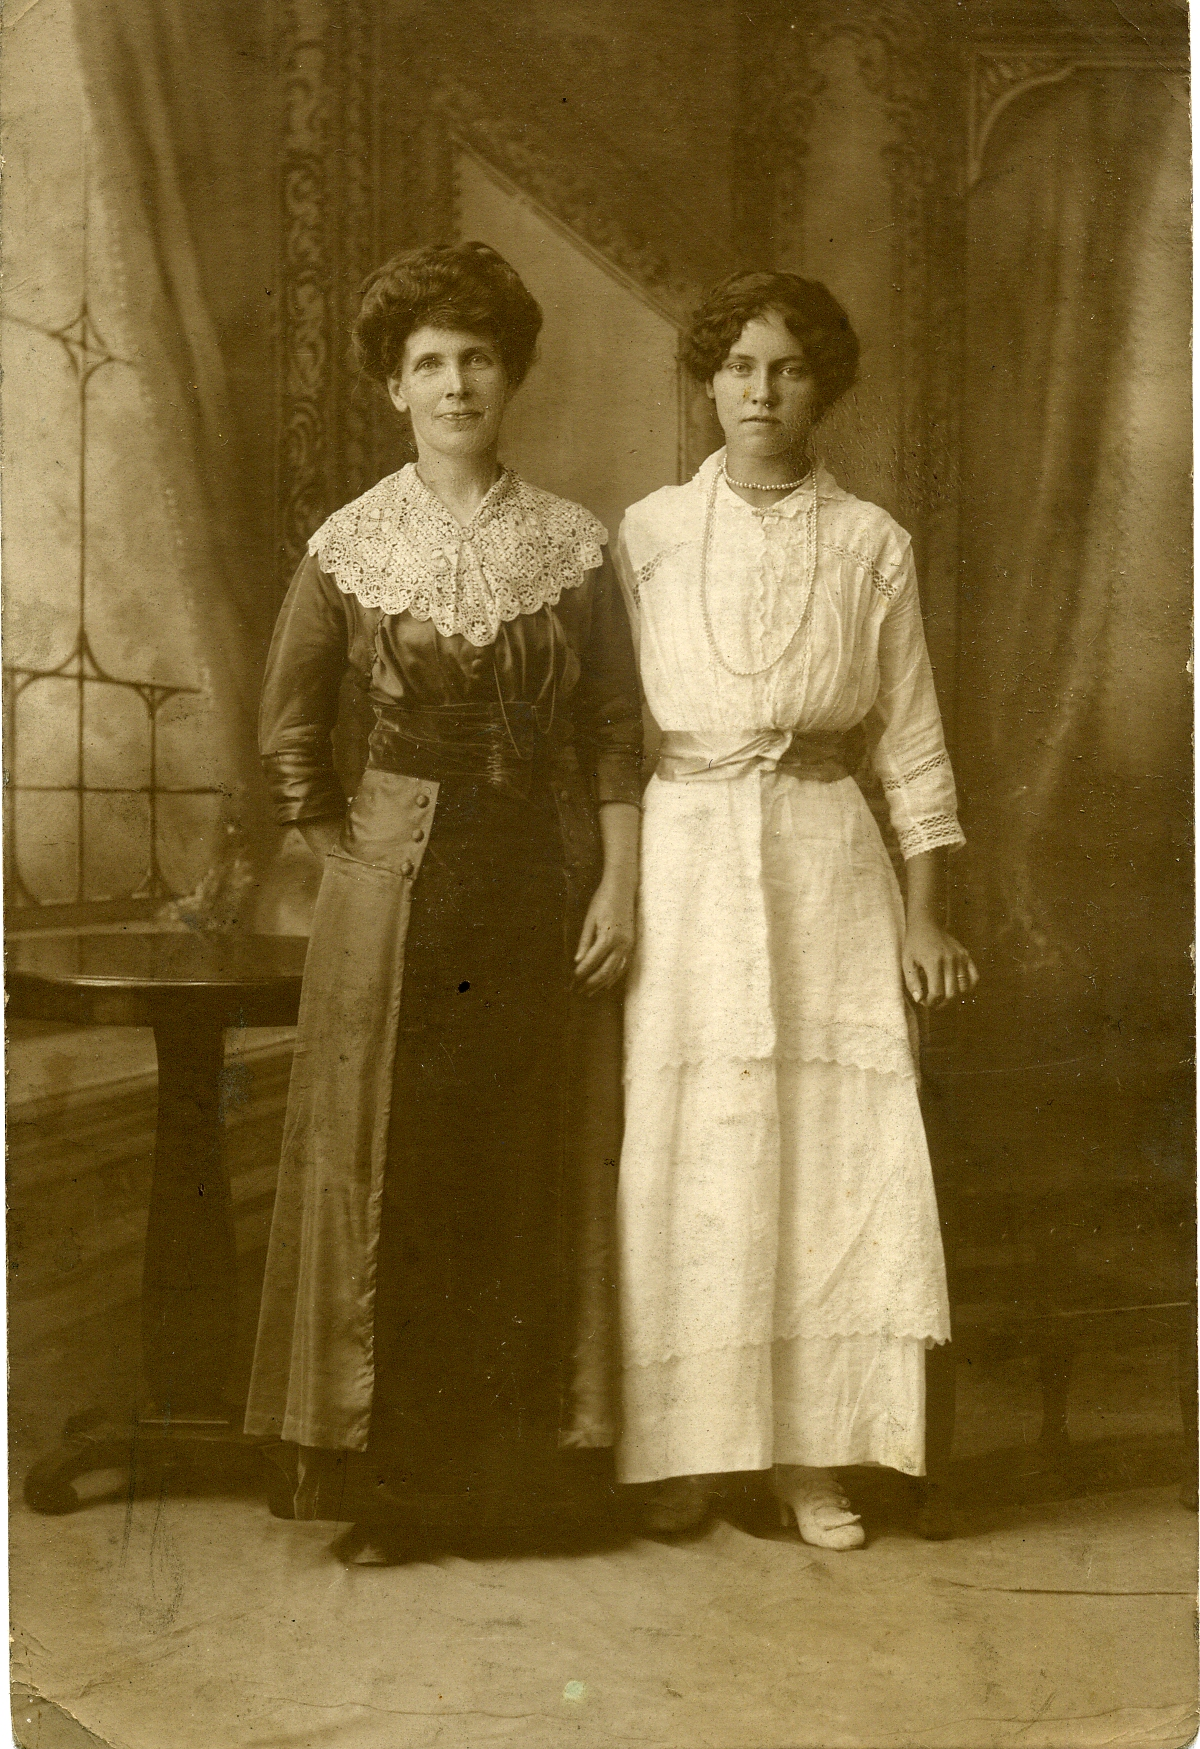 My Great Aunt and her daughter on her wedding day 1911.